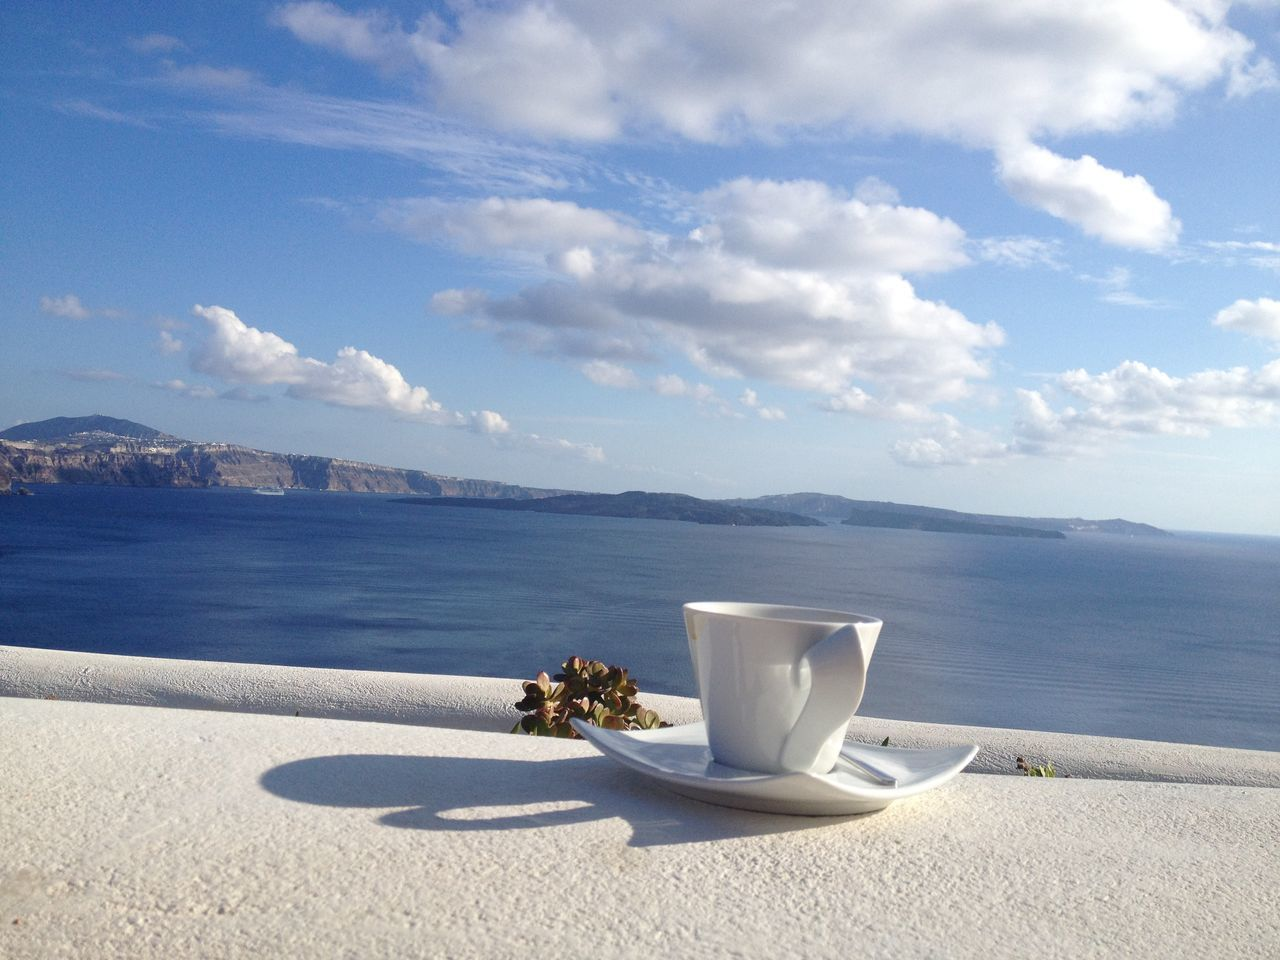 Coffee Cup By Sea Against Cloudy Sky